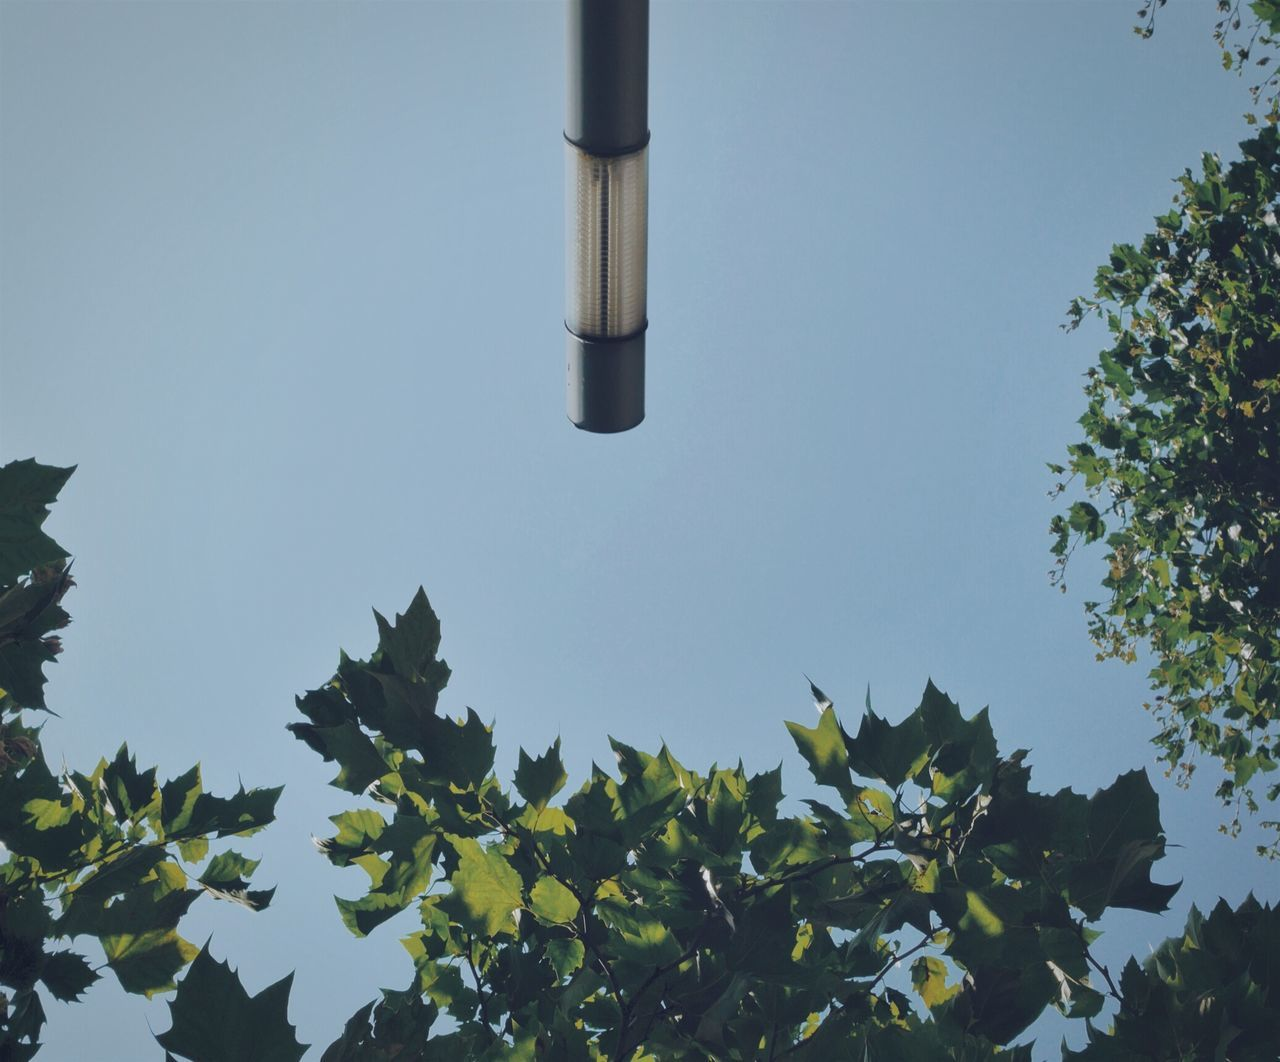 Low Angle View Of Lighting Equipment And Trees Against Clear Blue Sky